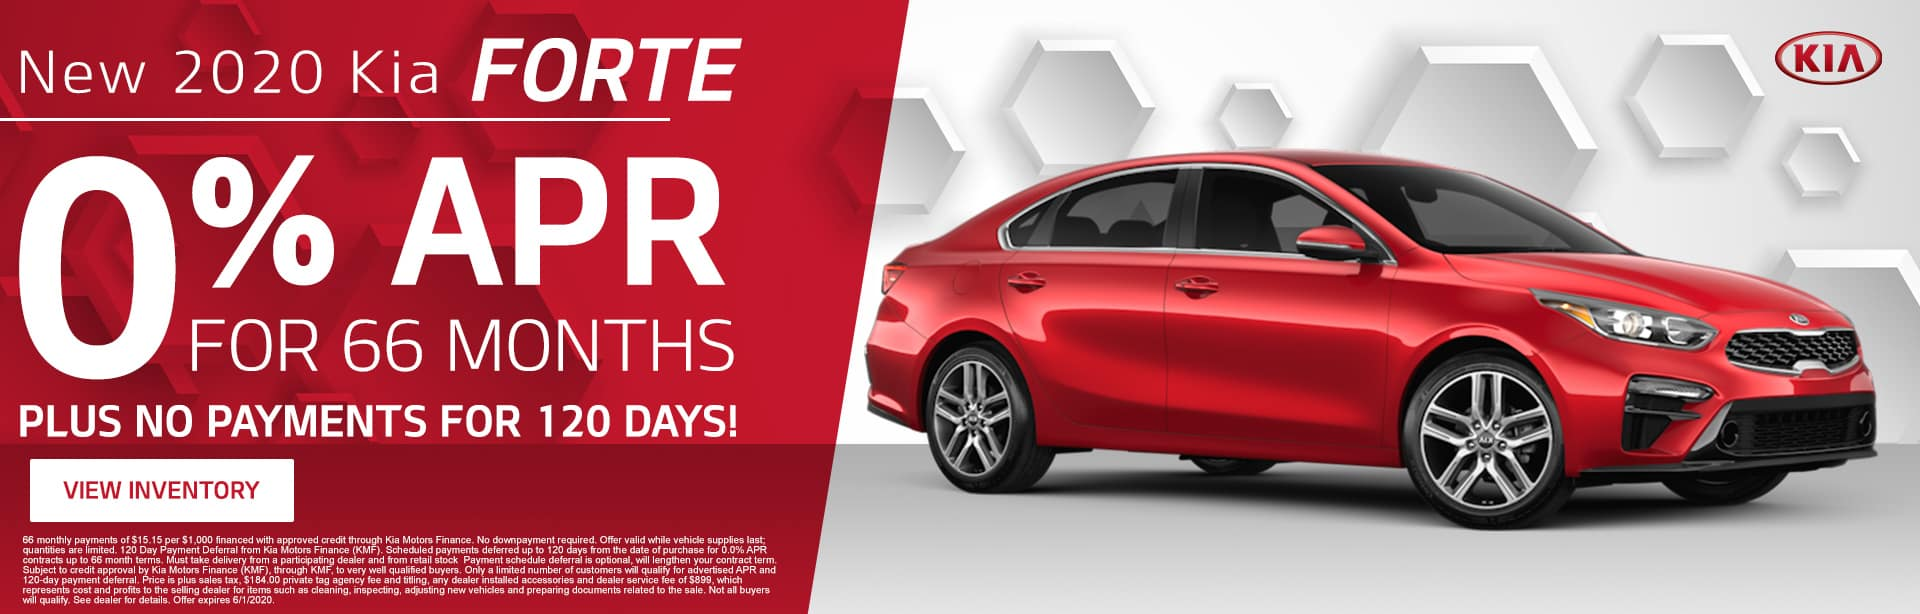 New 2020 Kia Forte | 0% APR For 66 Months Plus No Payments For 120 Days!